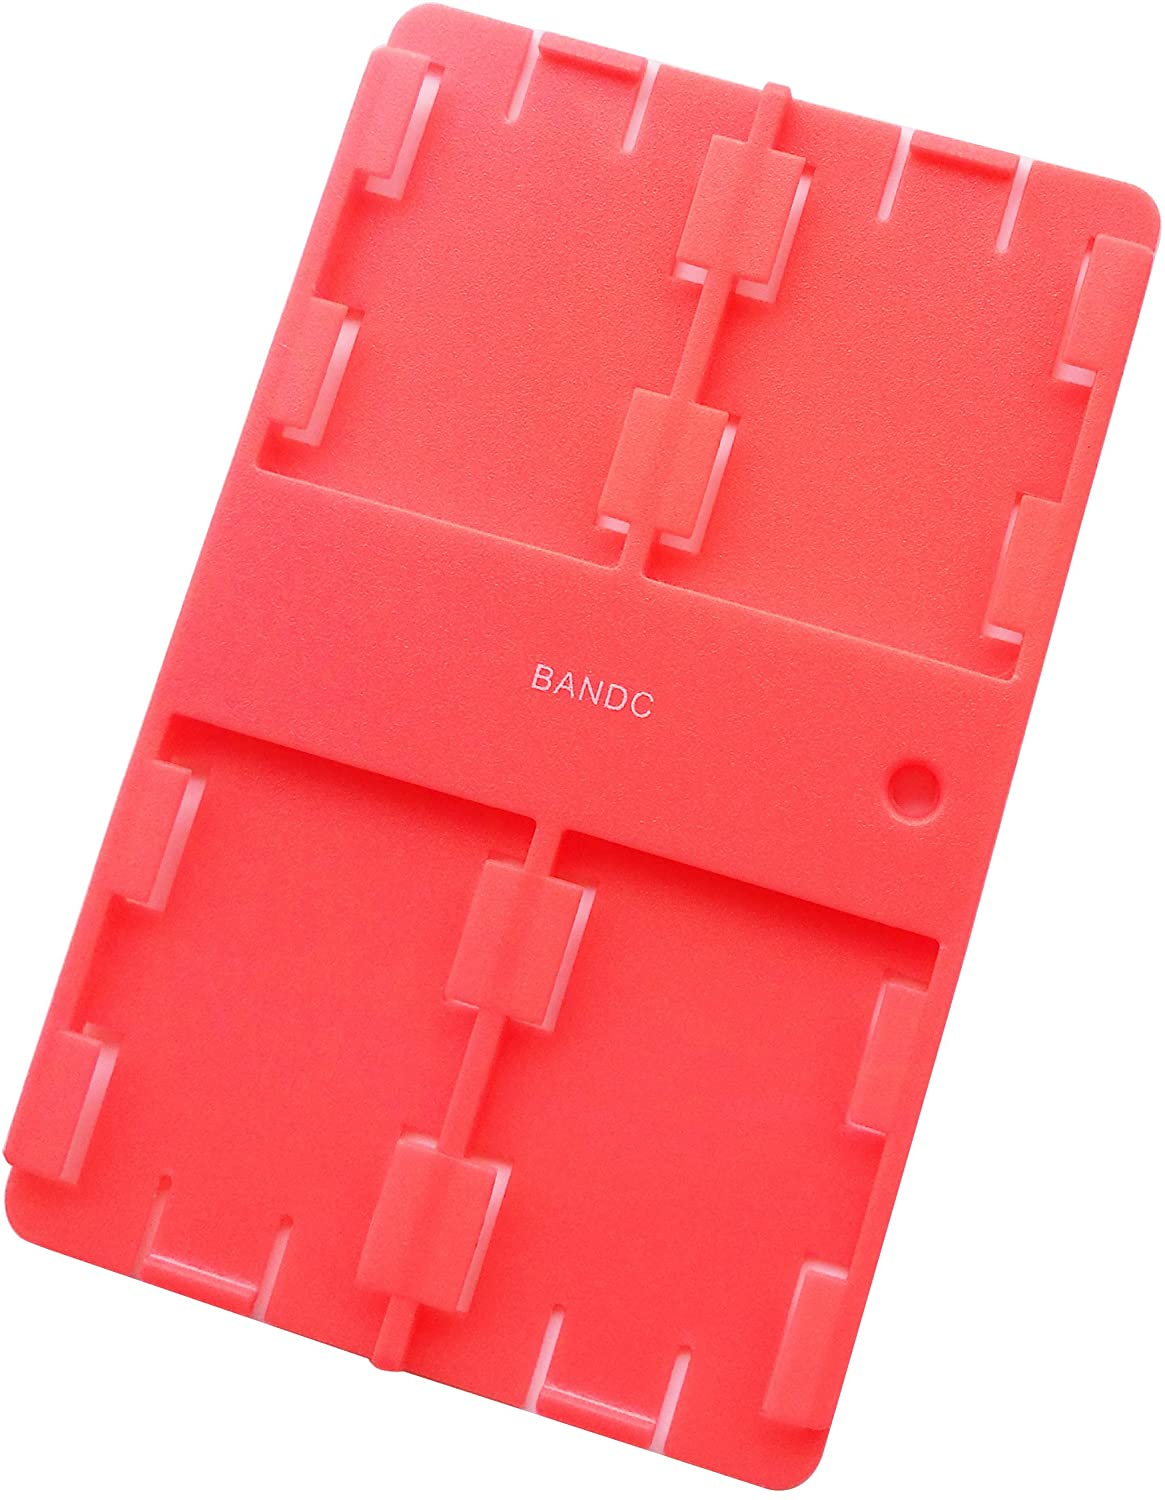 Bandc 2pcs Red Sd/sdhc/sdxc Card Storage Holder Case (Memory Card Not Included)